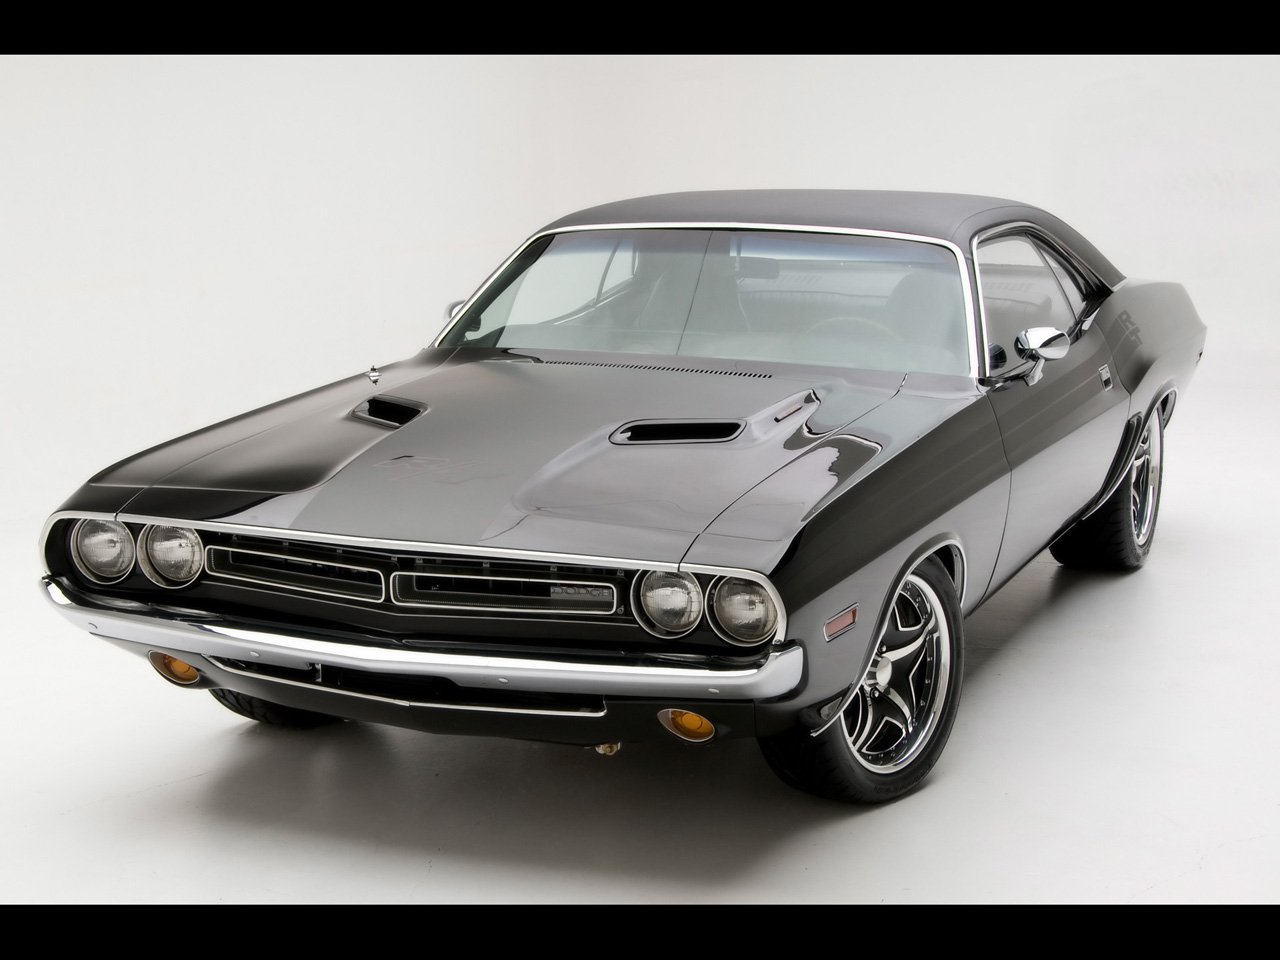 Dodge Challenger RT Muscle Car Wallpapers Widescreen Desktop 1280x960